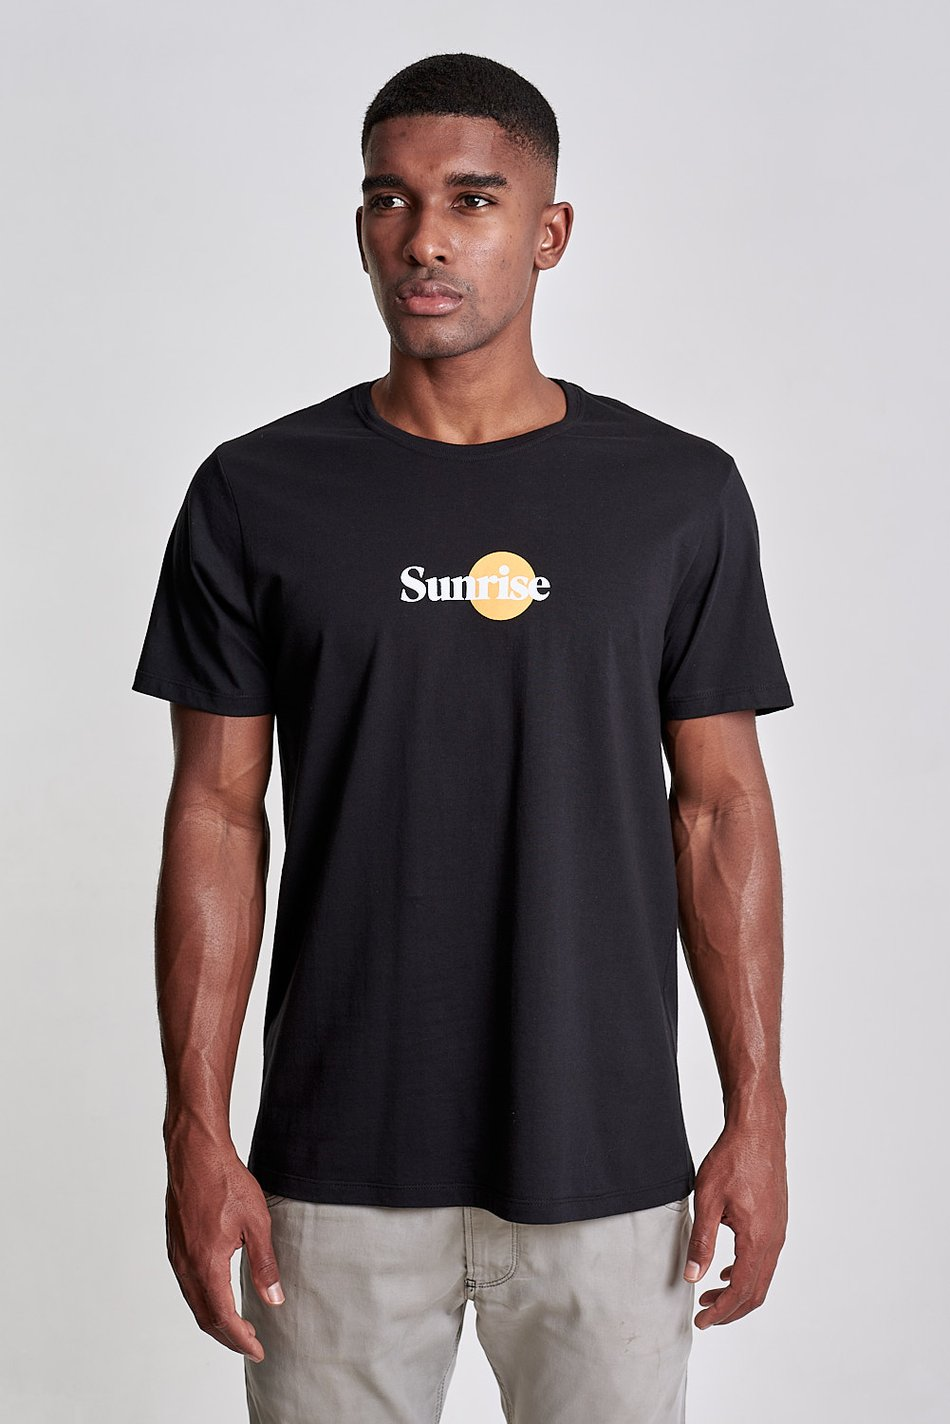 Camiseta Sunrise Preto Plain